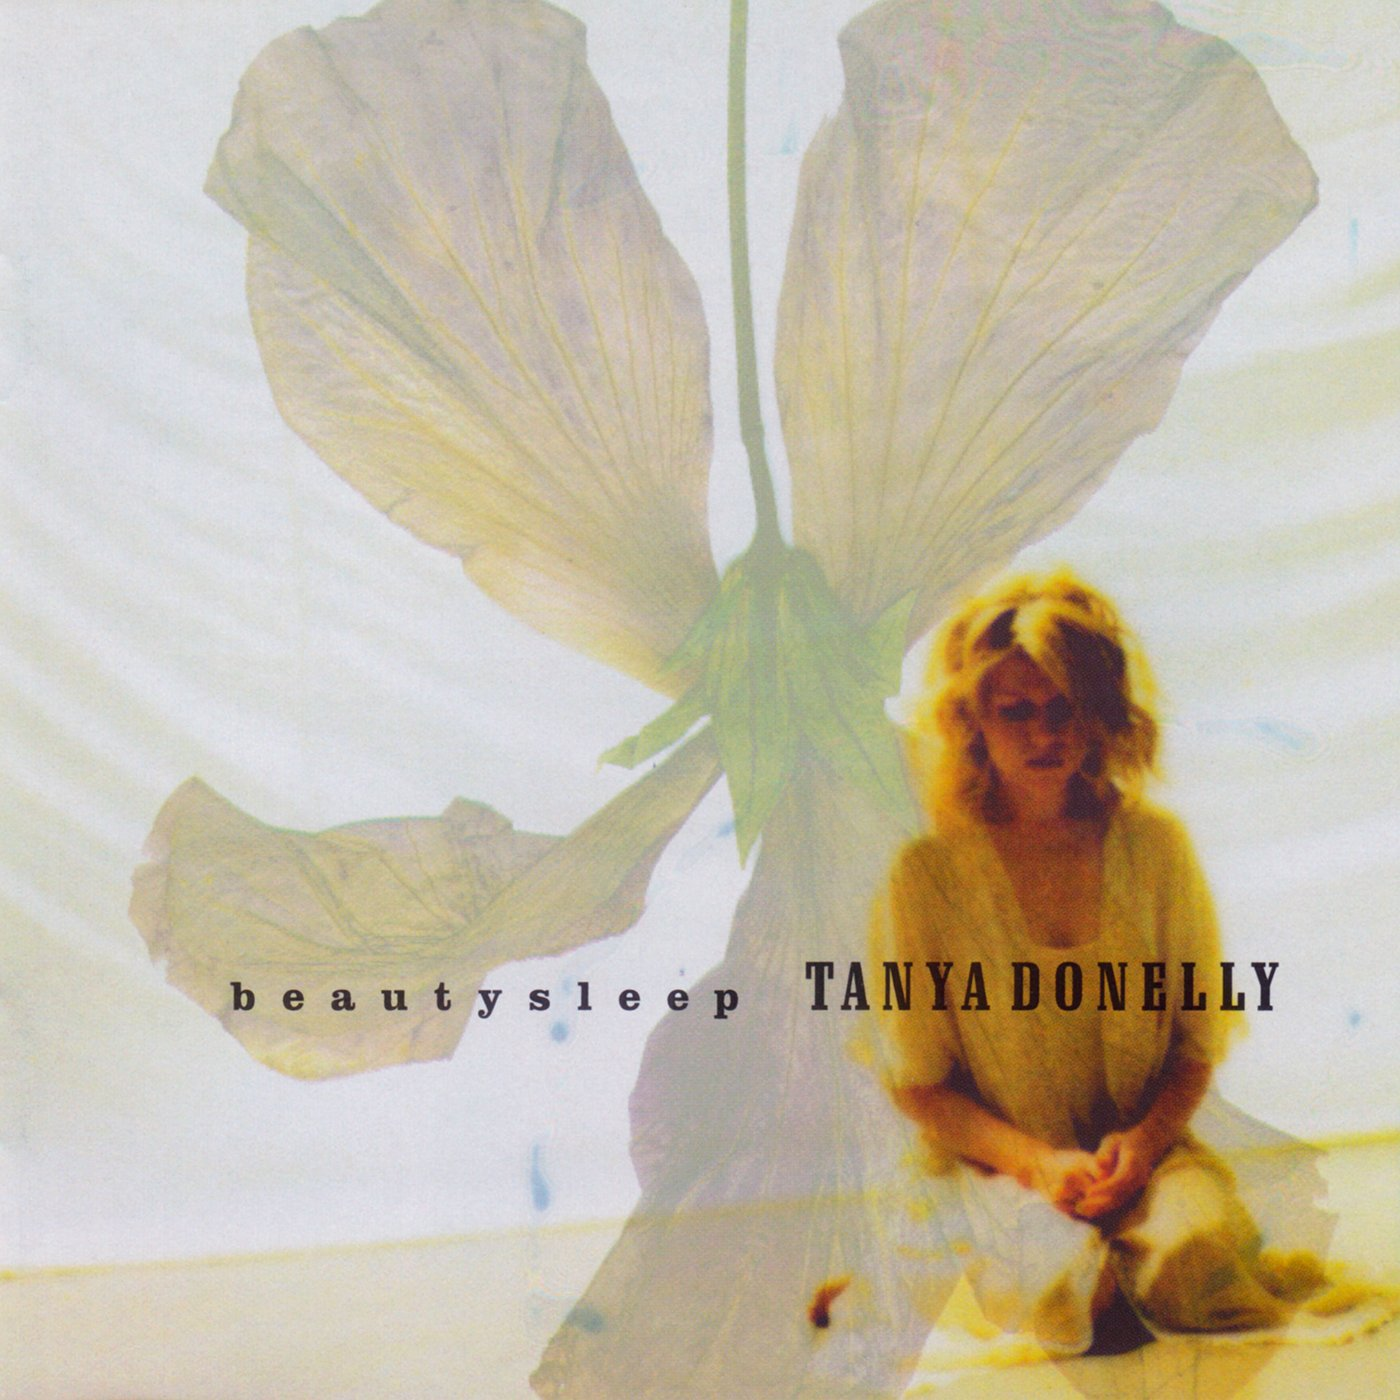 Tanya Donelly, Beautysleep